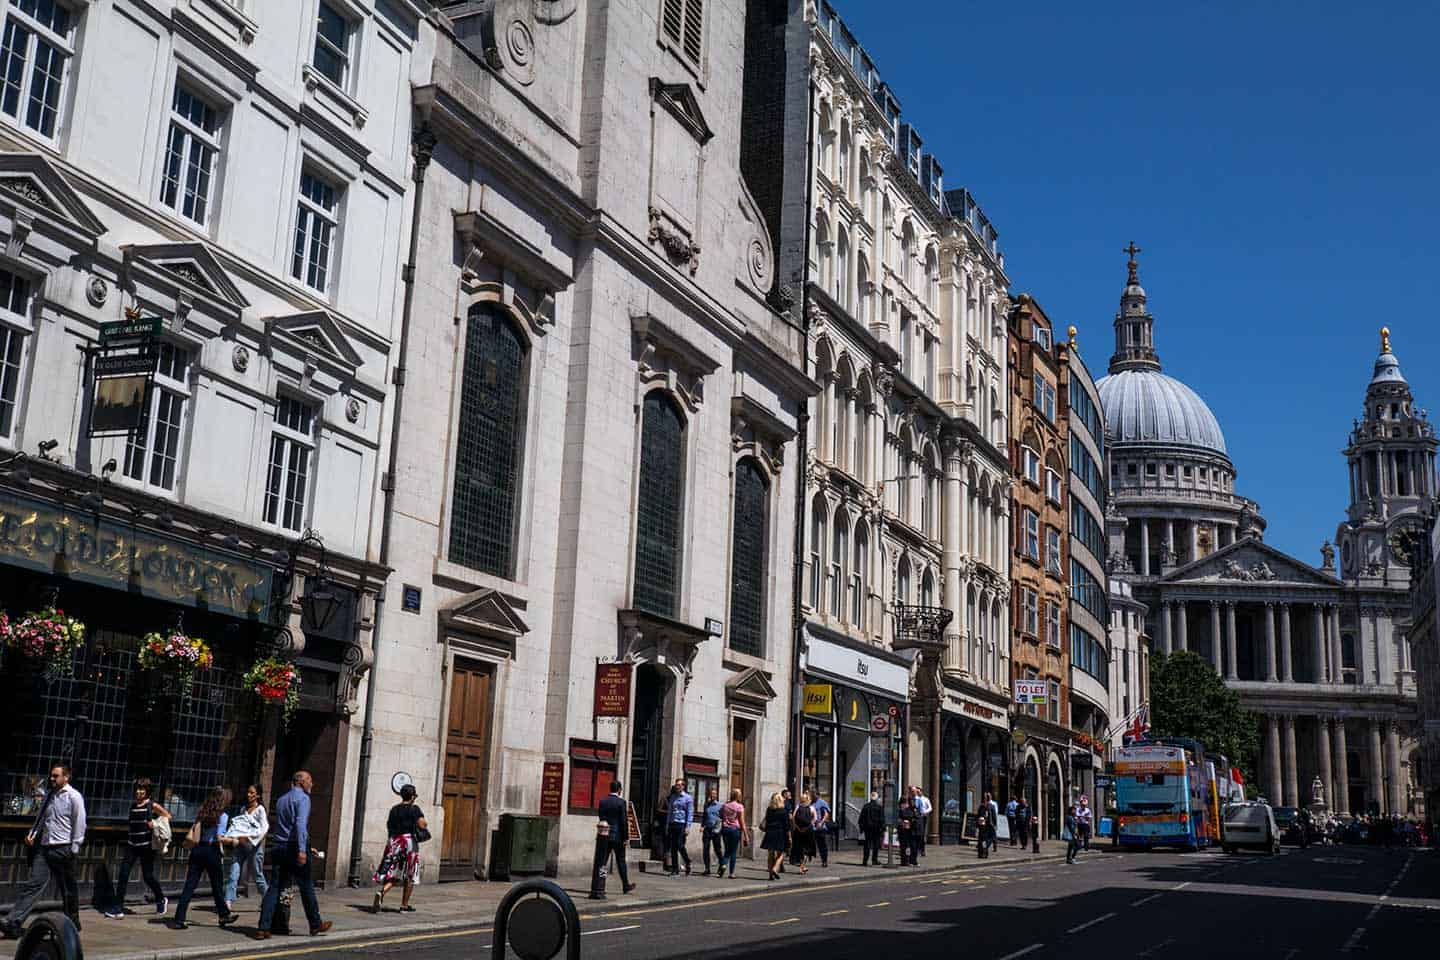 Image of Ludgate Hill looking up to St Paul's Cathedral, London